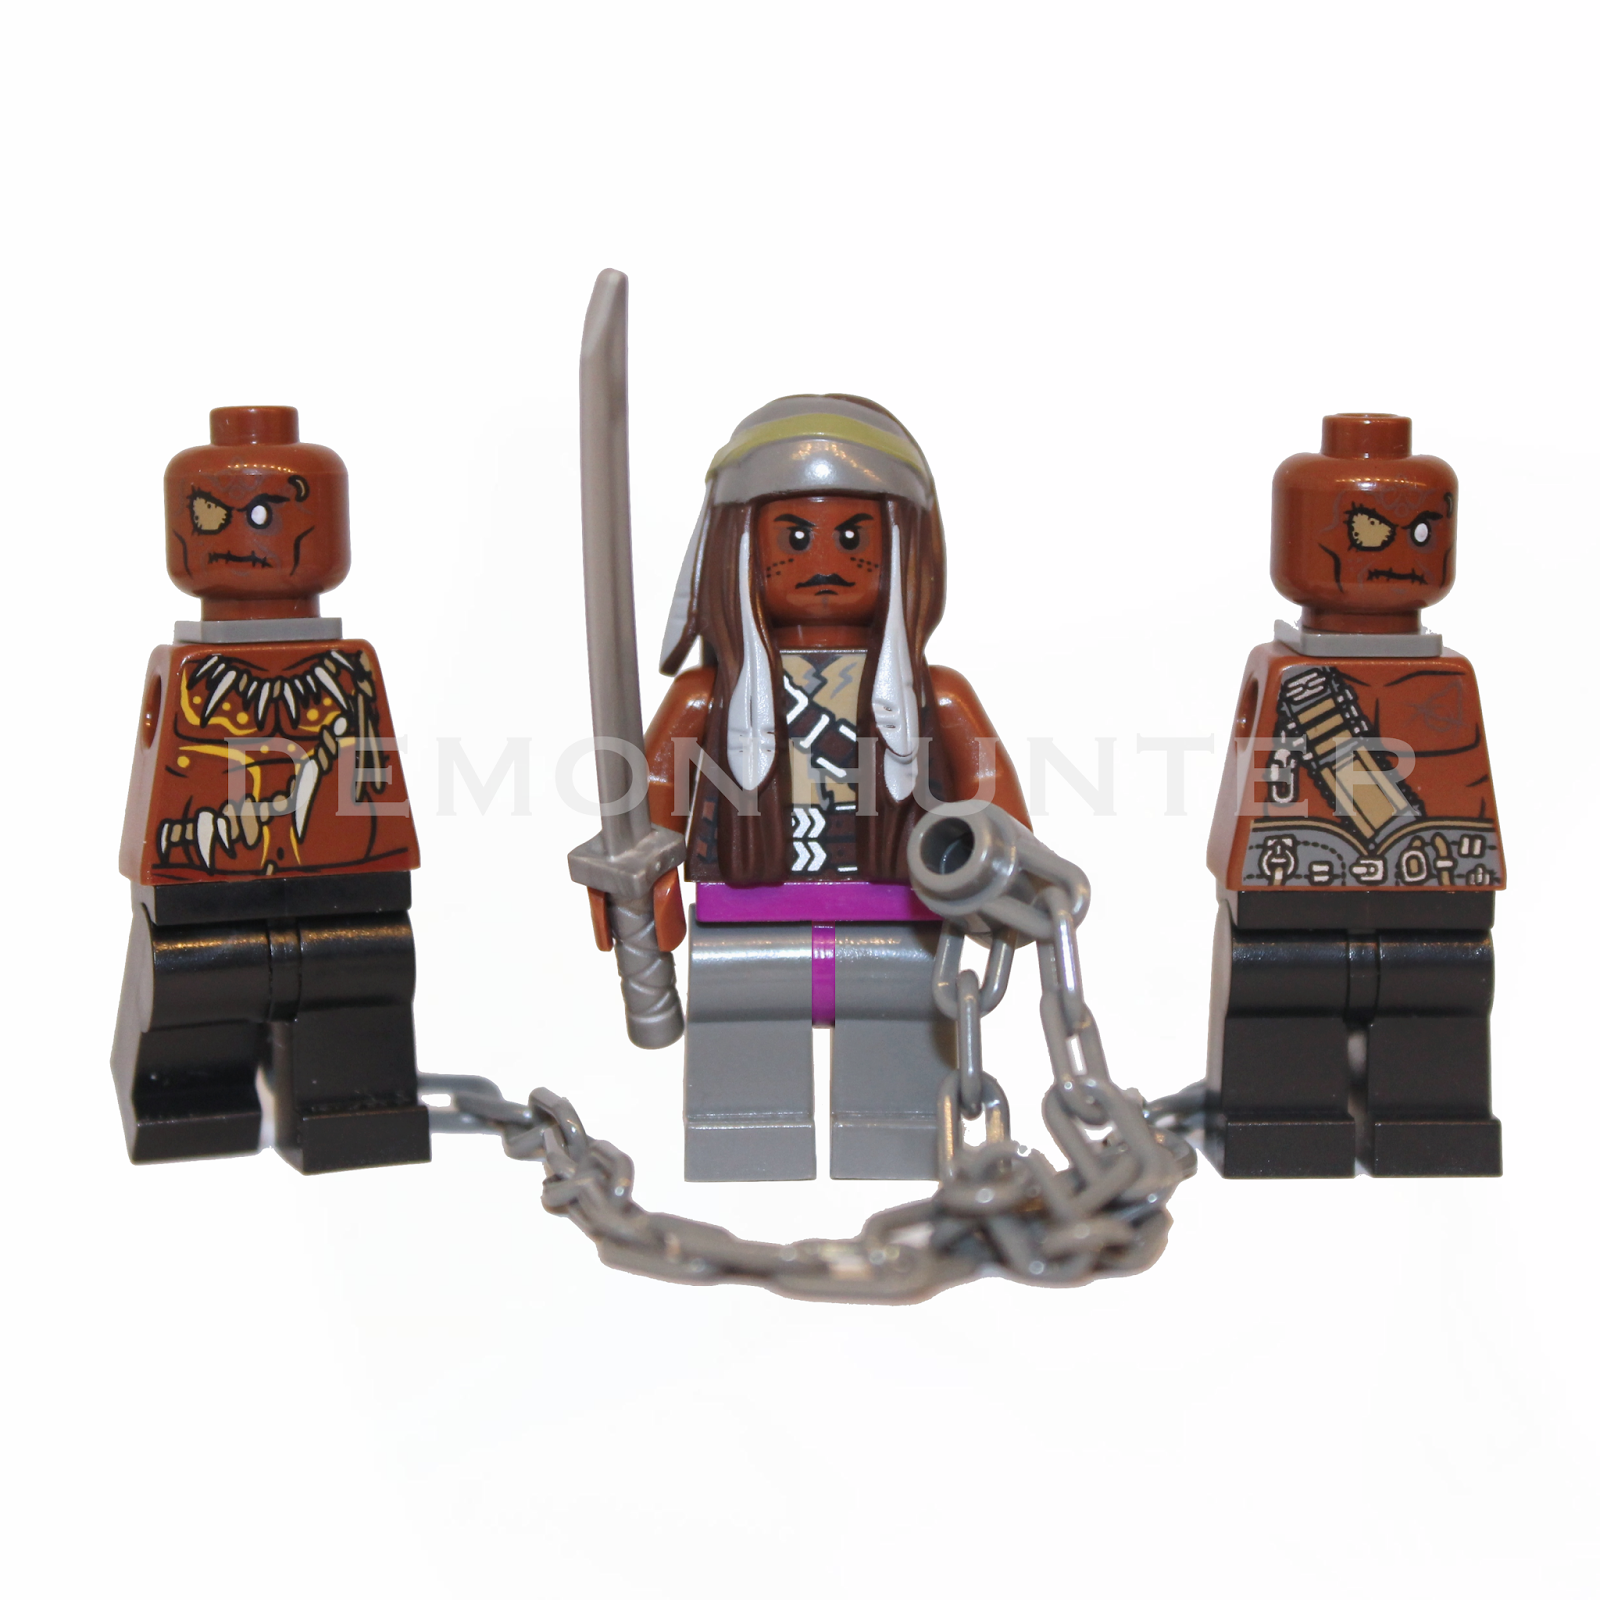 Walking dead lego daryl the walking - Lego Walking Dead Lego Michonne Custom Lego Walking Dead Lego Michonne